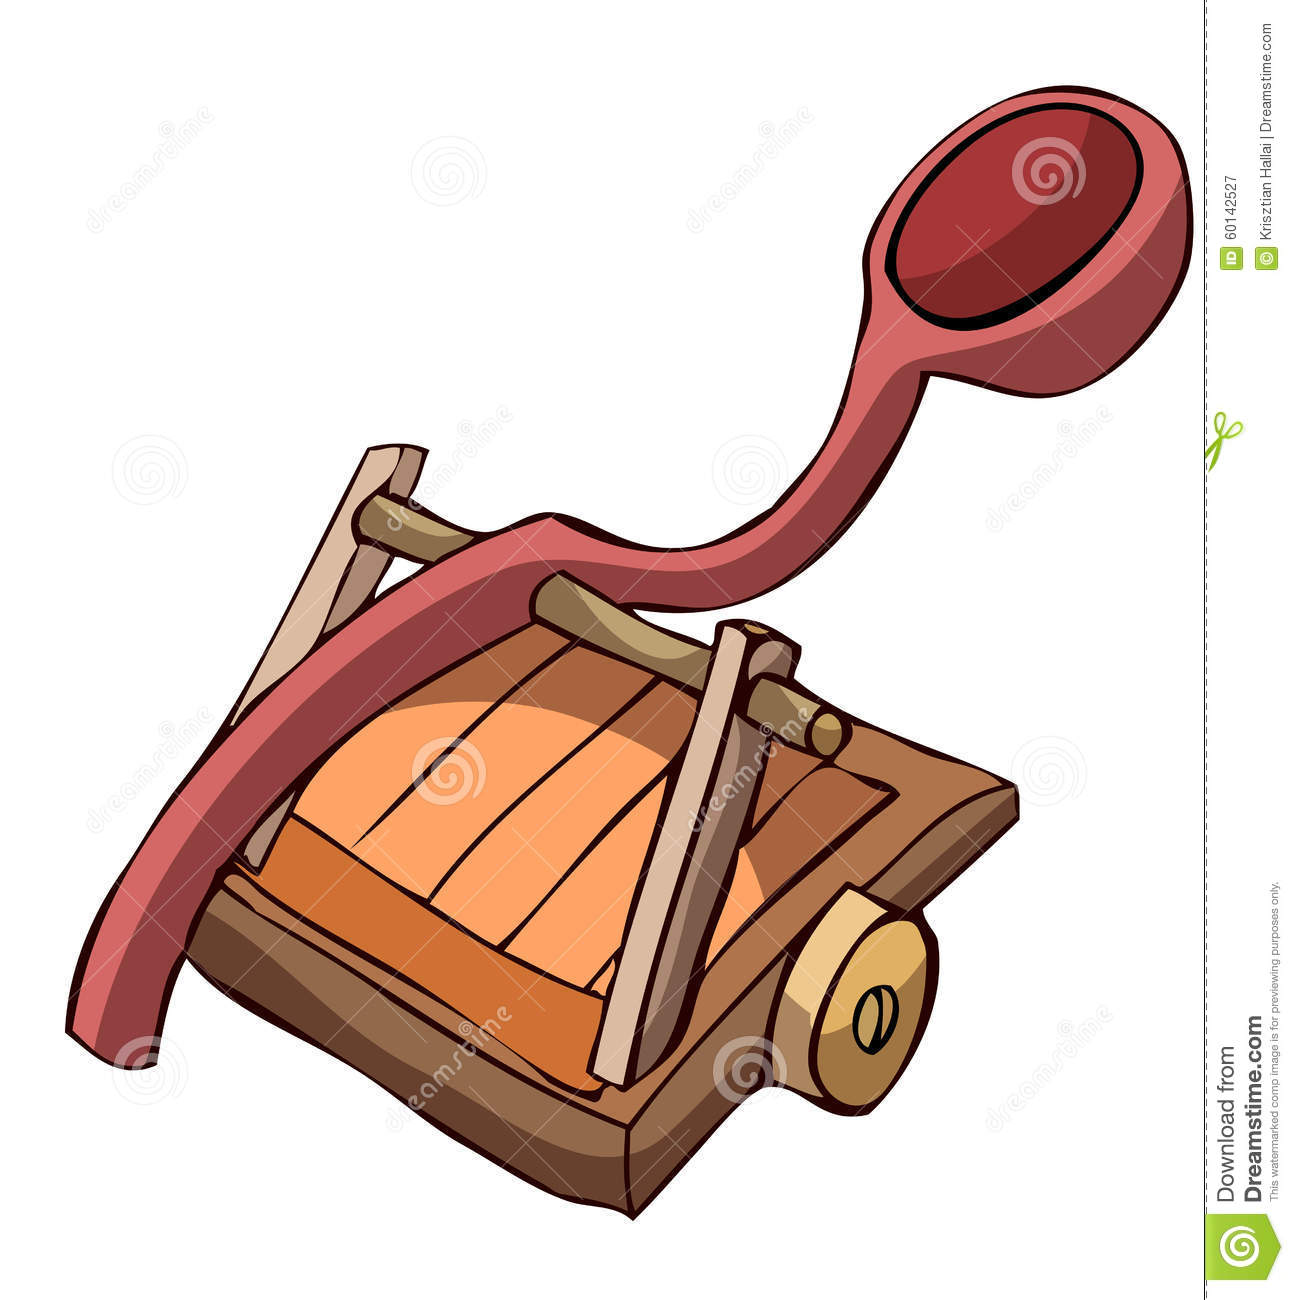 Ancient Catapult Cartoon Royalty Free Stock Photo - Image: 28577835